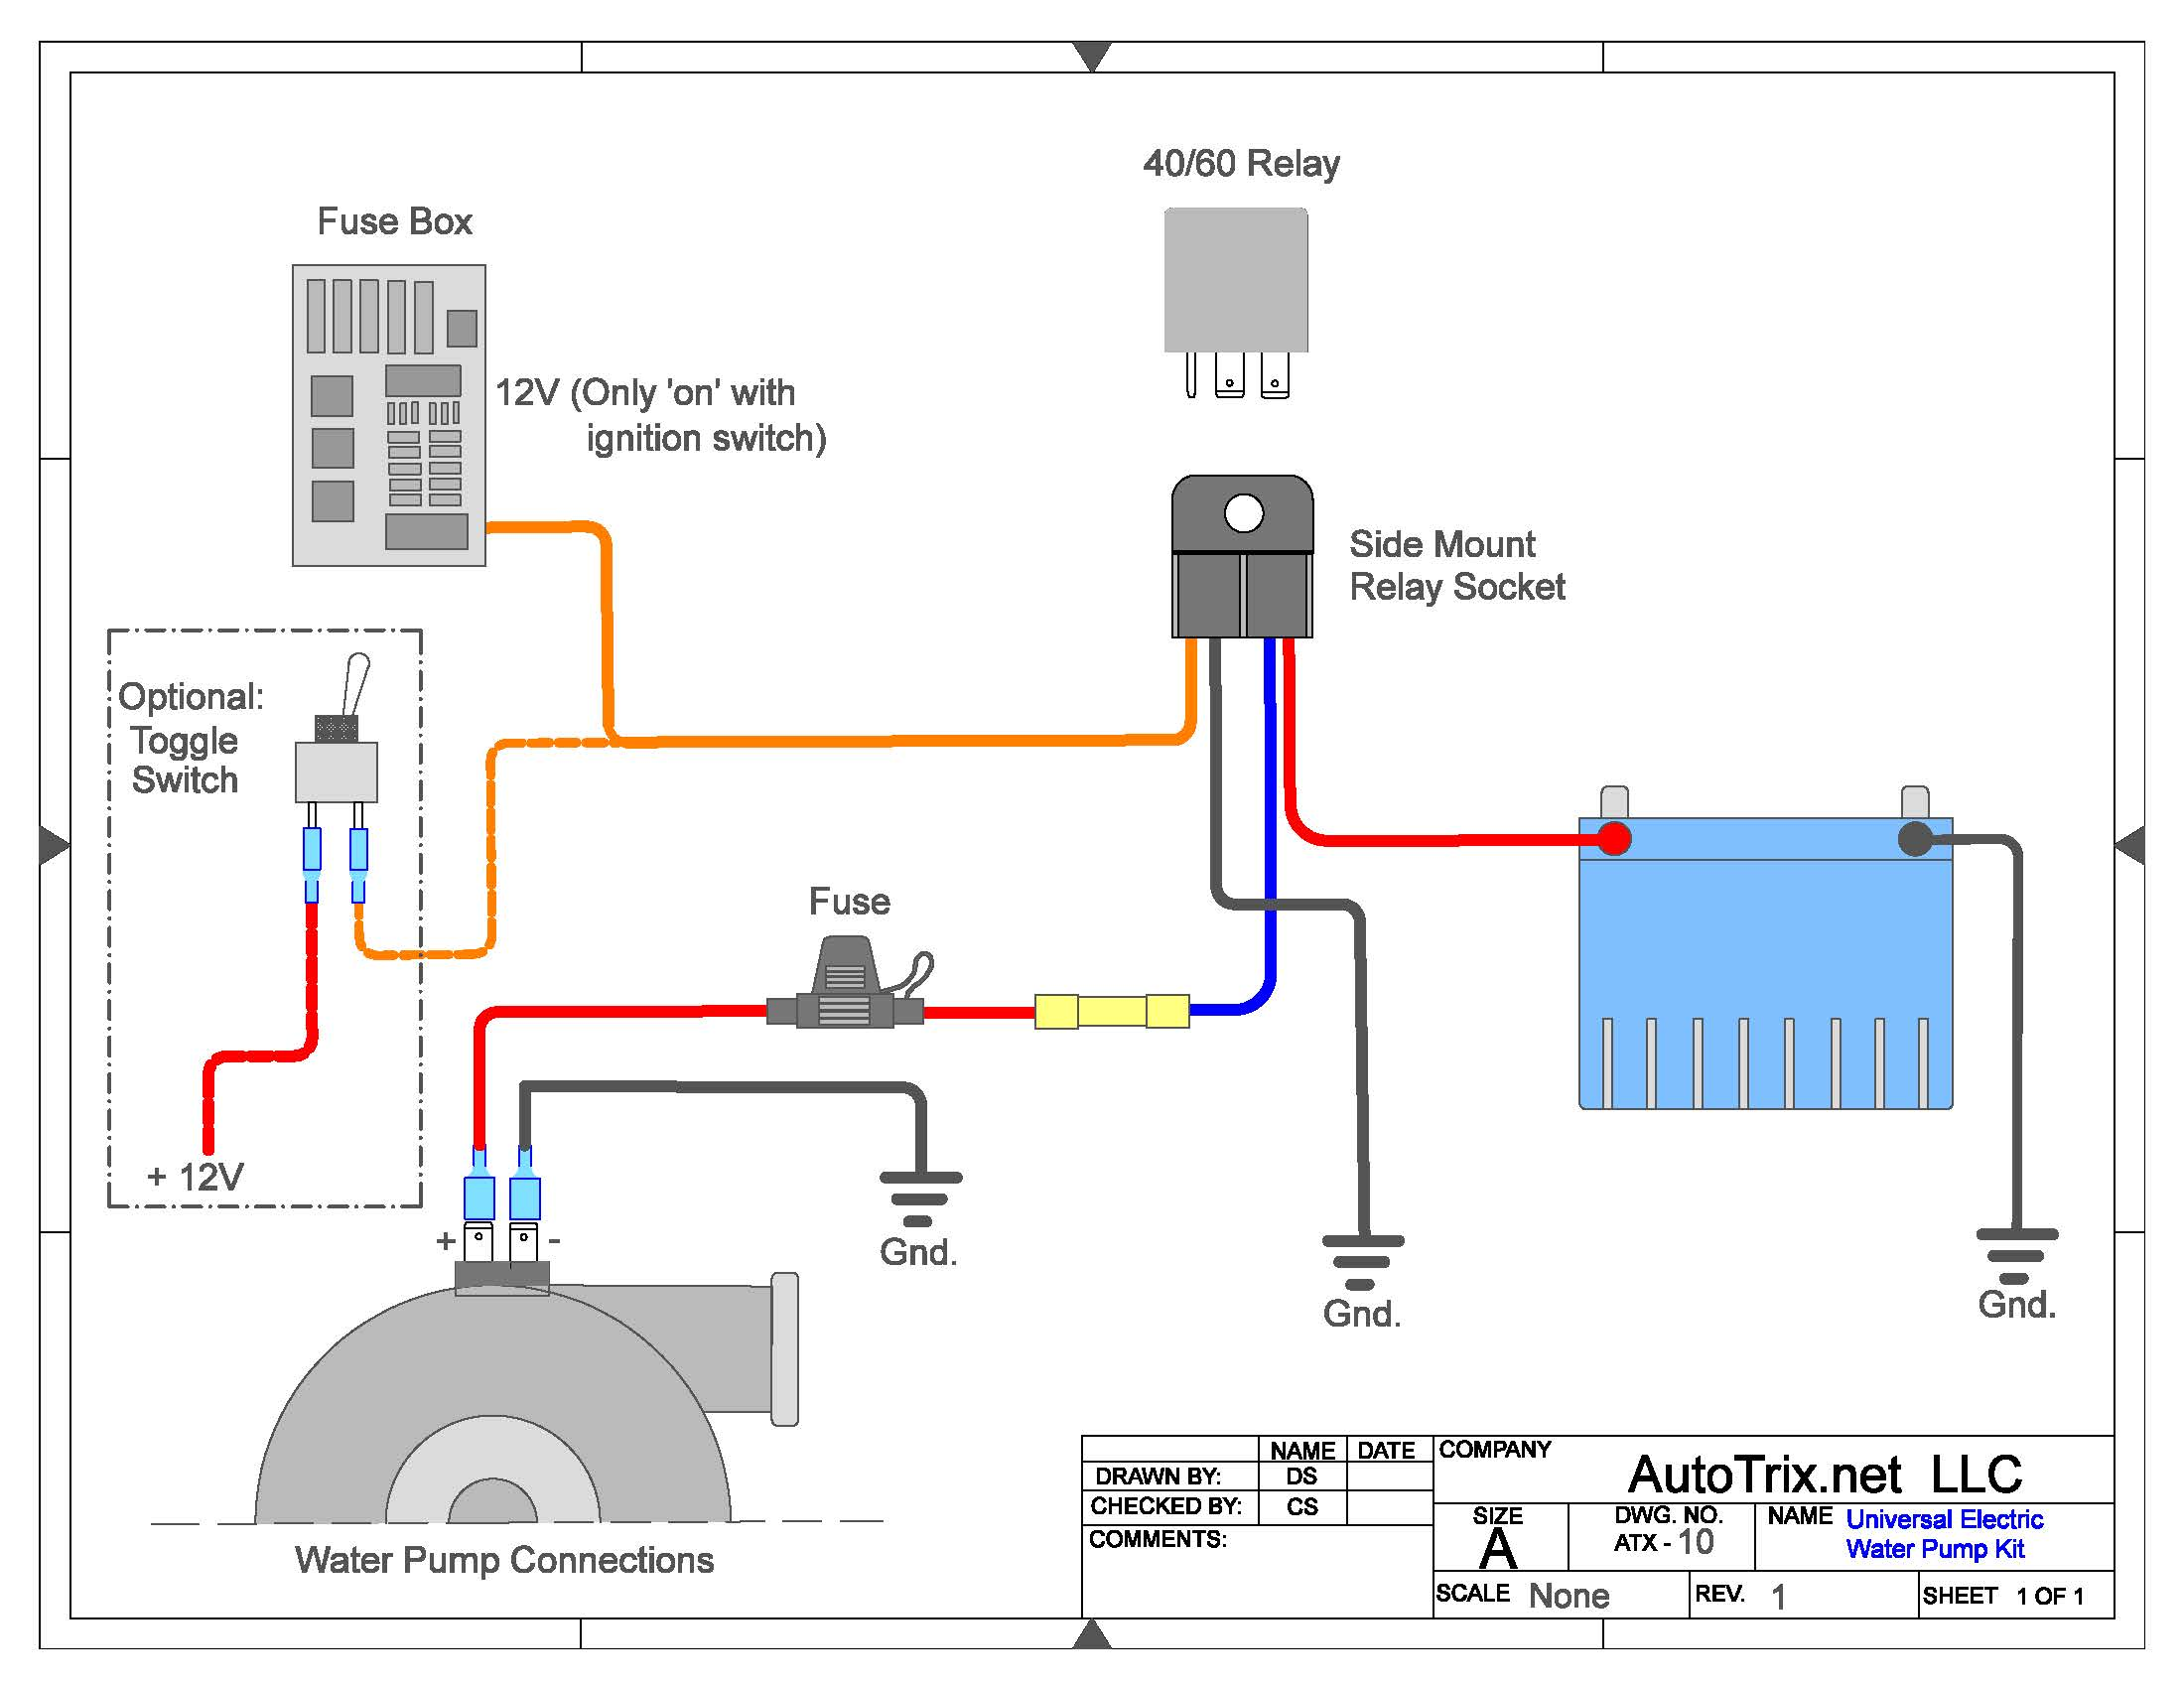 water pump 220 wiring diagram - 2009 vw rabbit fuse diagram for wiring  diagram schematics  wiring diagram schematics